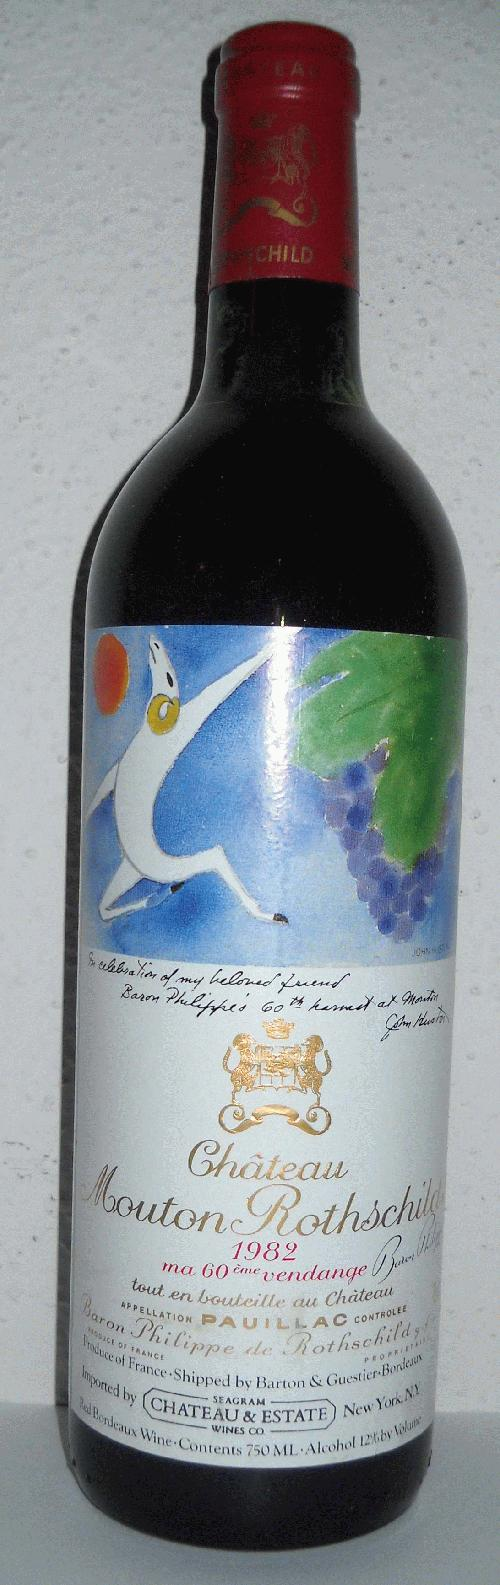 1982 Chateau Mouton Rothschild  - RP 100 - LEGENDARY benchmark wine to which all others are compared! Lowest price anywhere!! ~~~ *Gather Ye Rosebuds While Ye May*